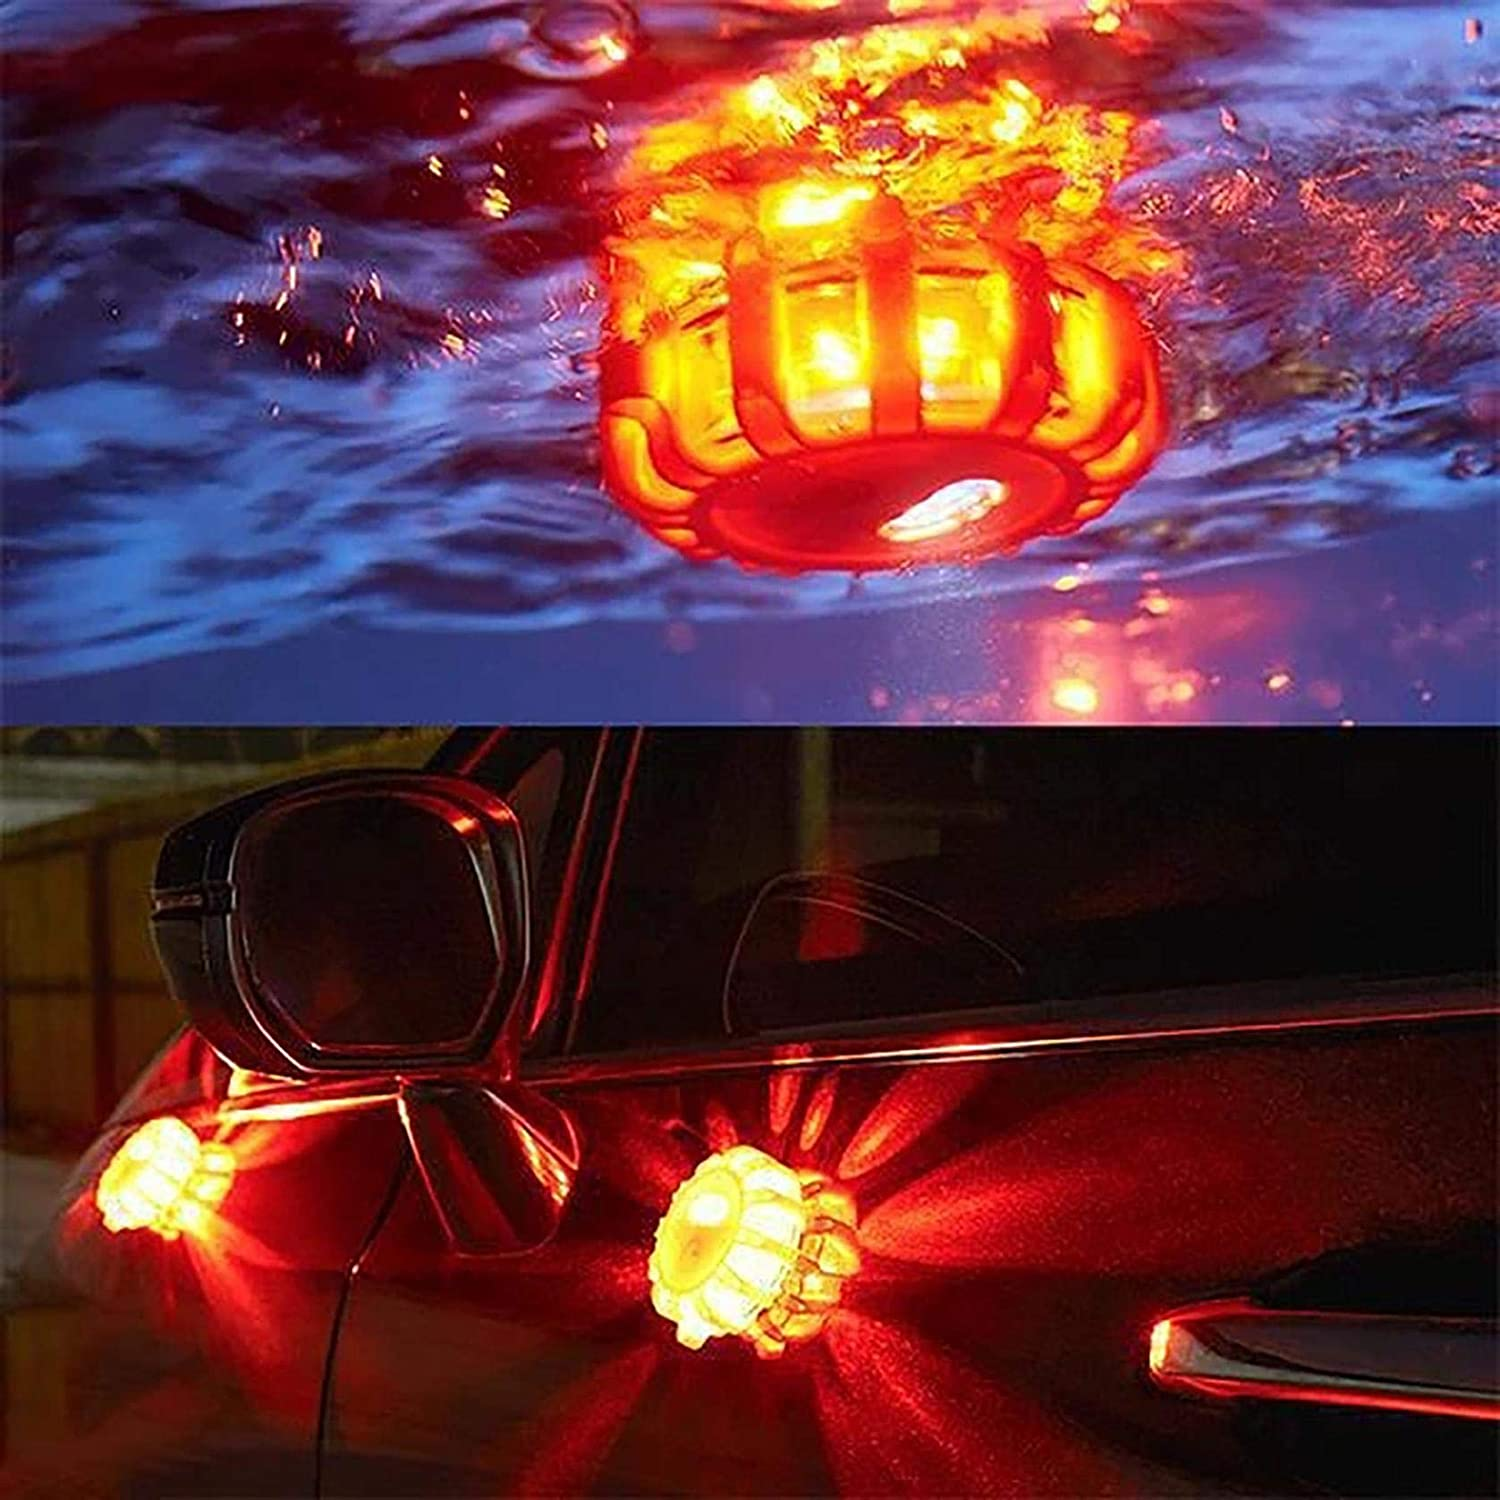 4.13x1.38inch Roadside Warning Car Safety Flare Kit Magnetic Waterproof Flashing Disk S5E5X 3PC LED Road Flares Emergency Lights 9 Flash Modes Blue for Vehicles 3 Beacon Disc Pack